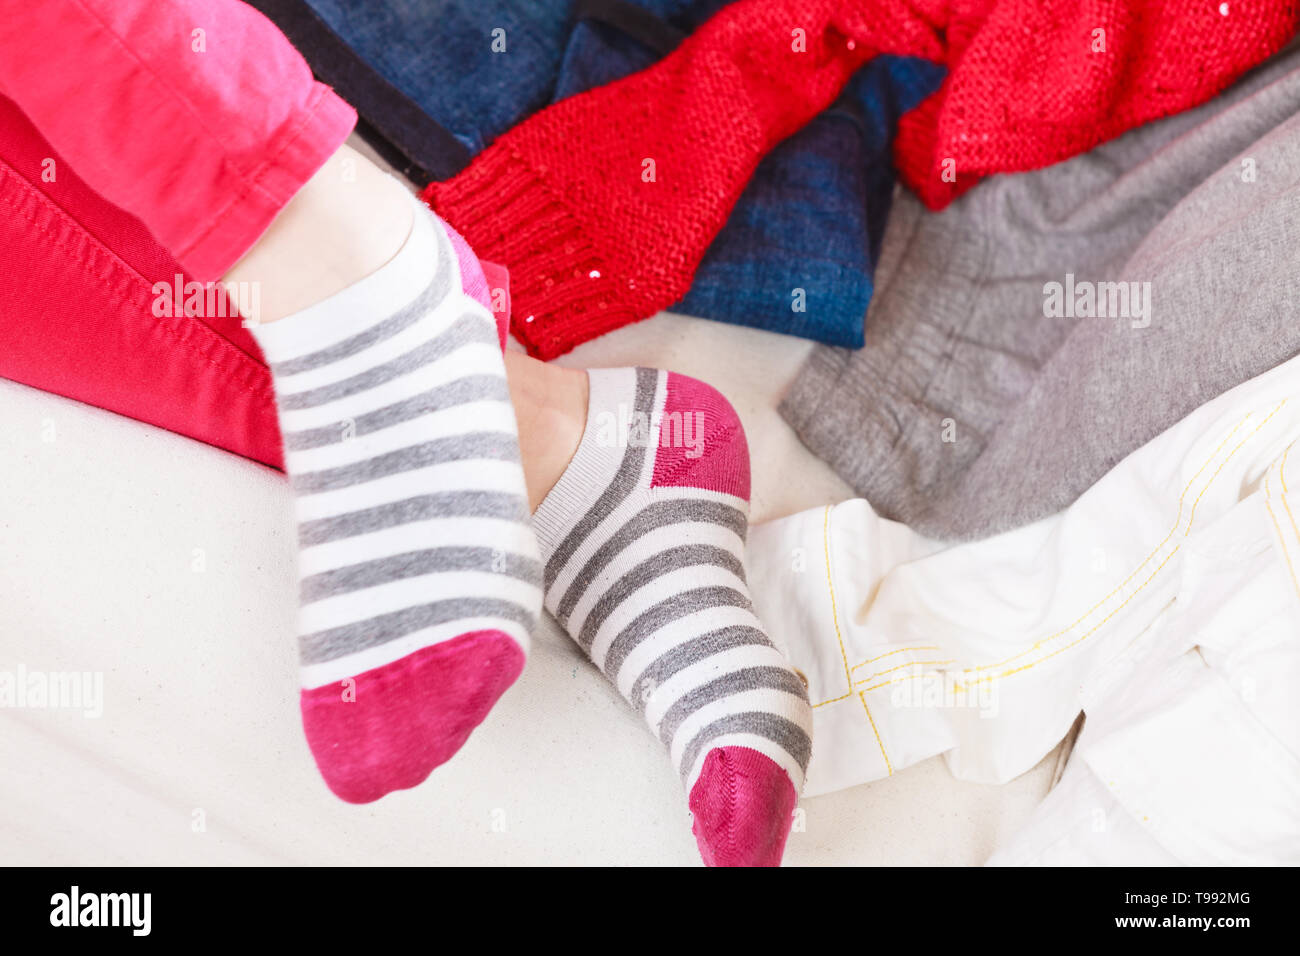 Close up of human woman feet in colorful striped socks. - Stock Image